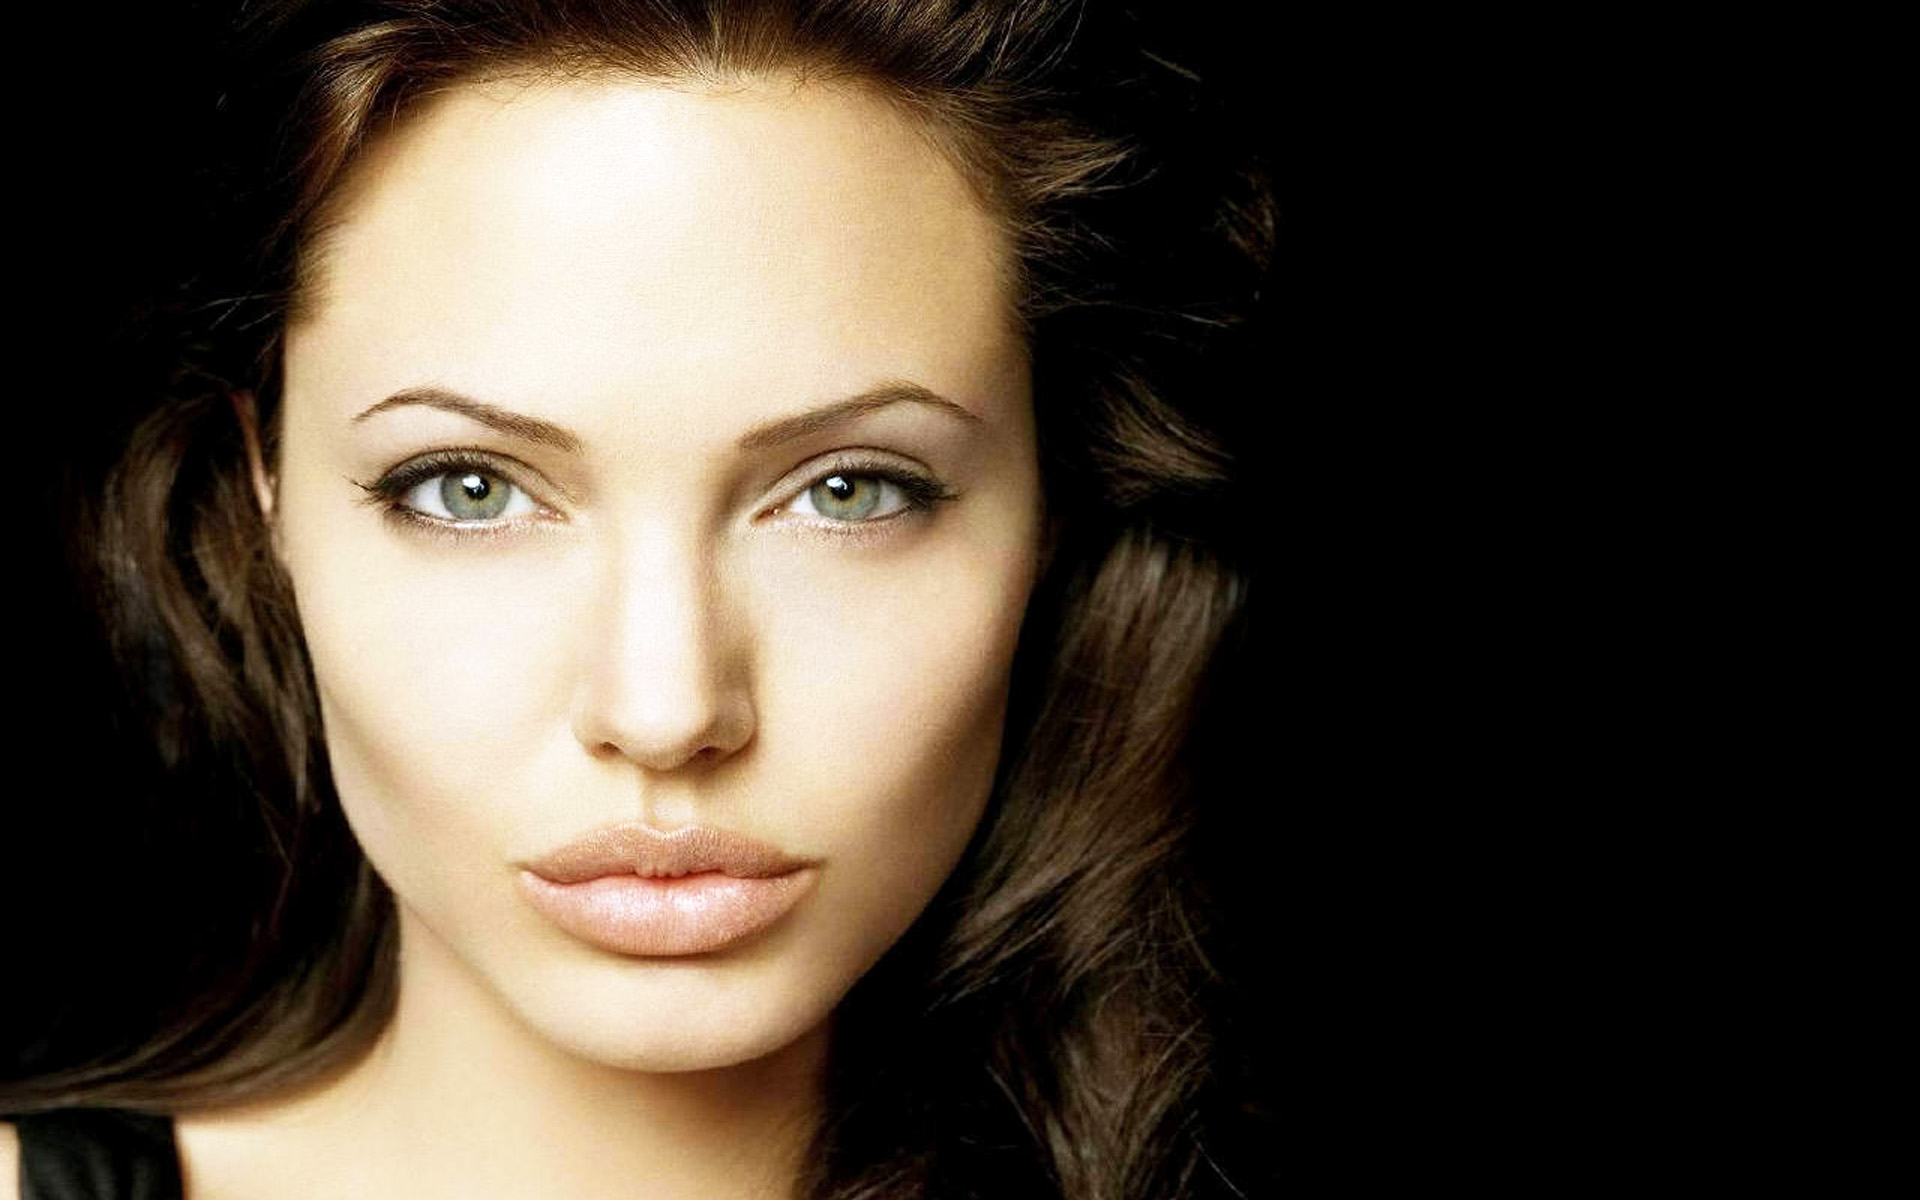 Angelina Jolie News: New Latest Wallpapers Of Angelina Jolie 2012 High Quality